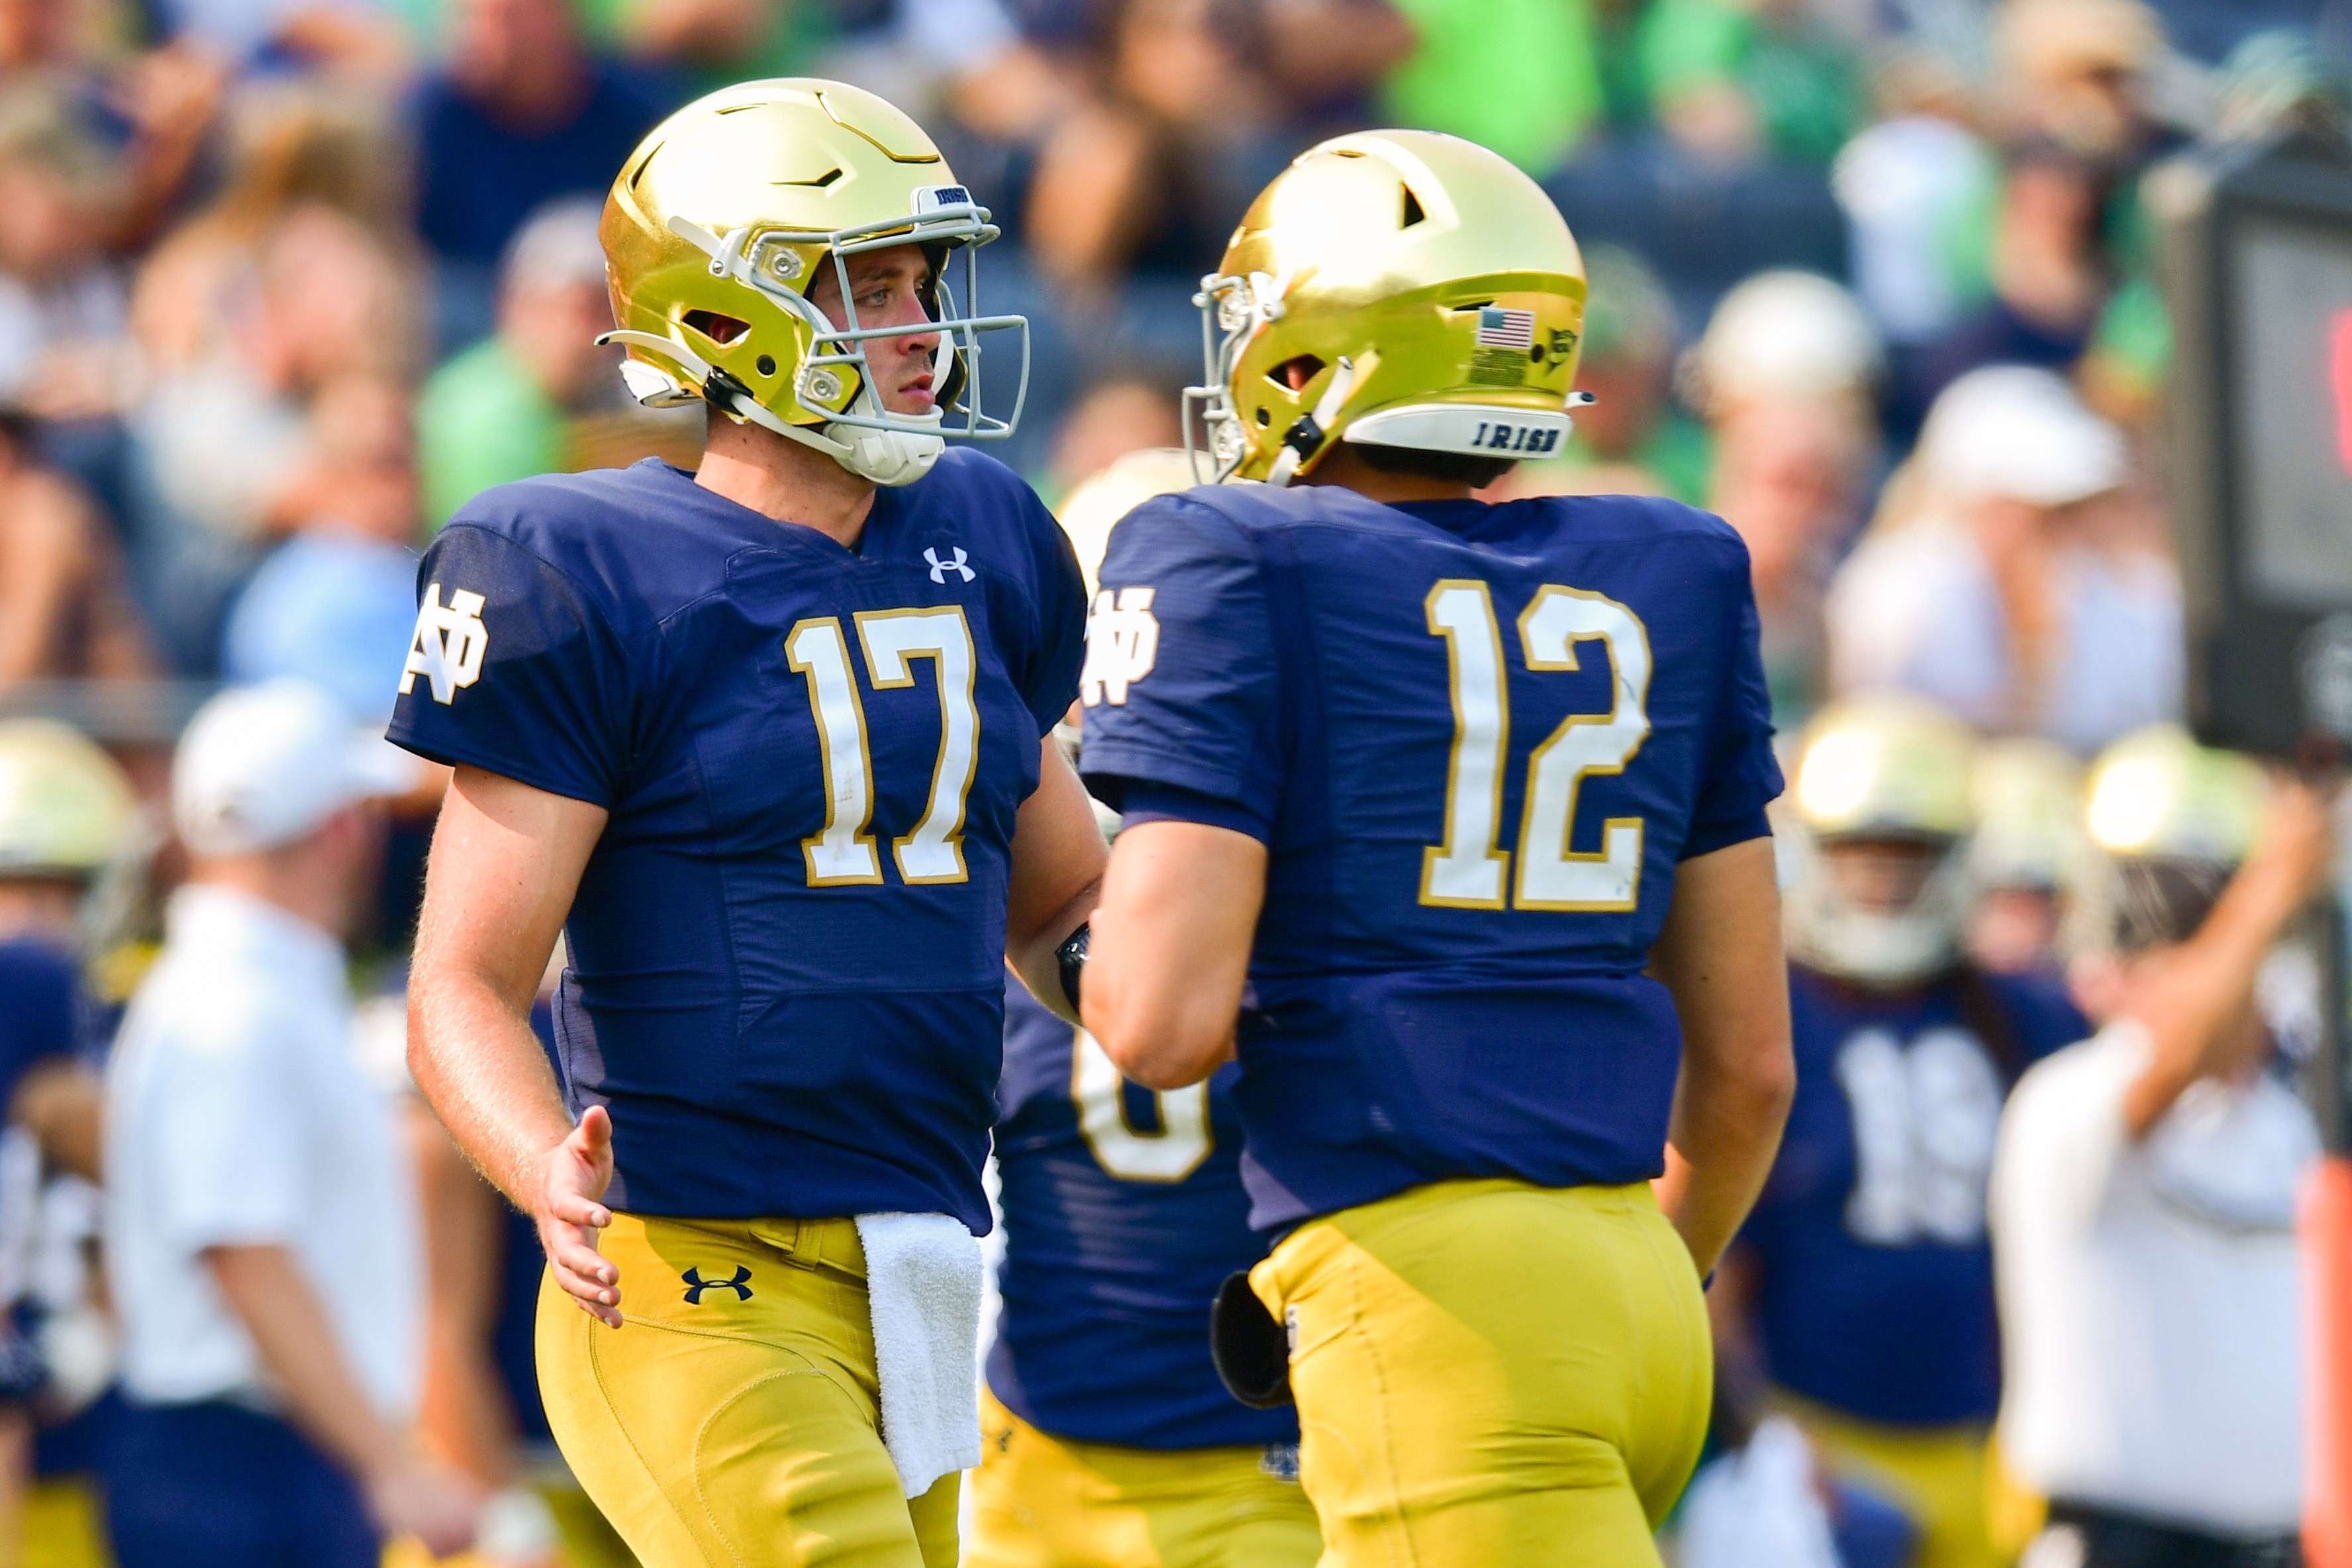 Notre Dame Fighting Irish quarterback Jack Coan runs on to the field as quarterback Tyler Buchner leaves the field in the third quarter at Notre Dame Stadium.